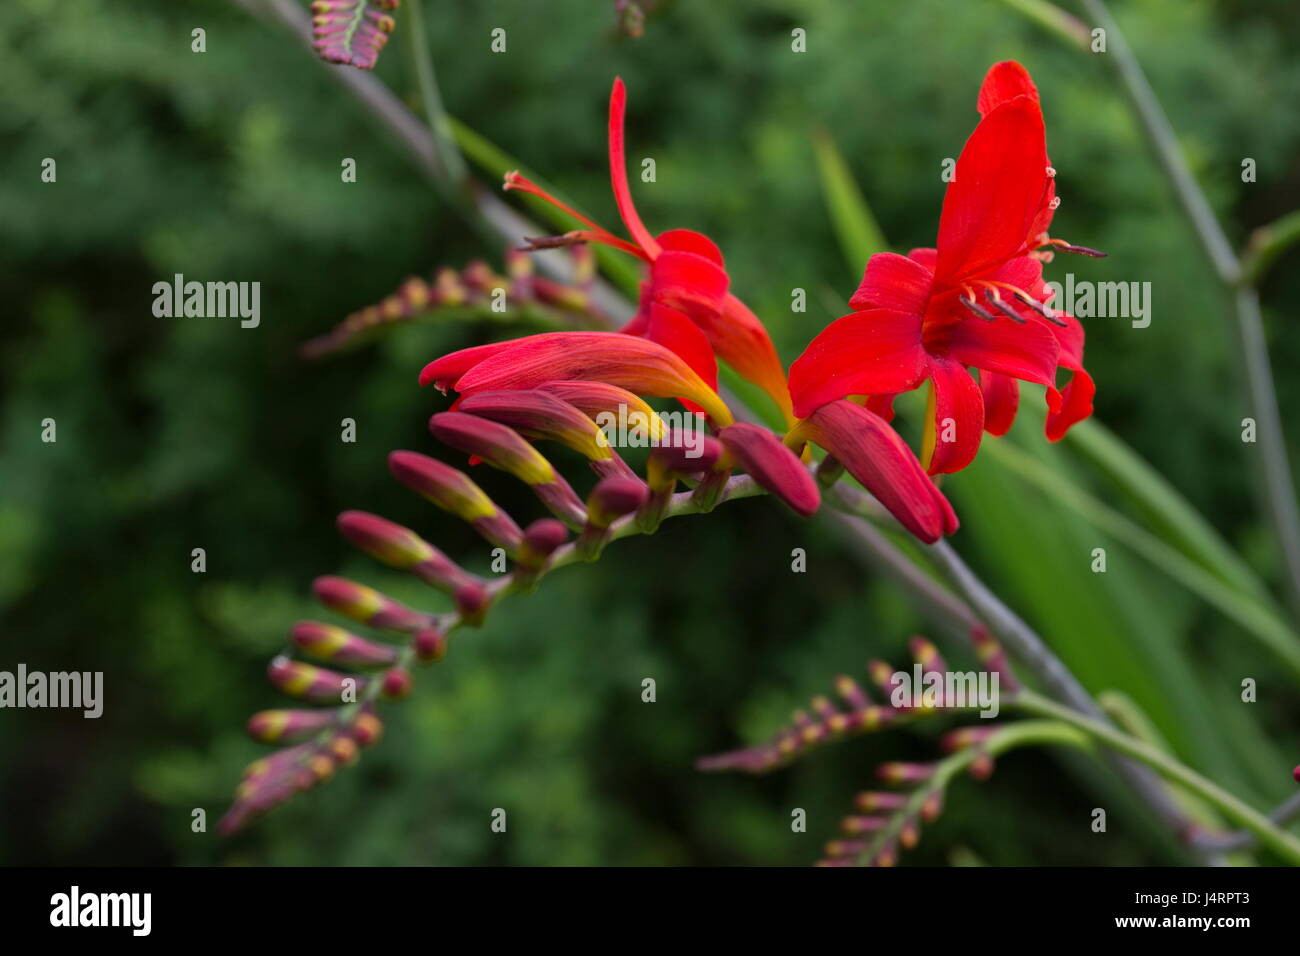 Crocosmia lucifer with red flowers Stock Photo